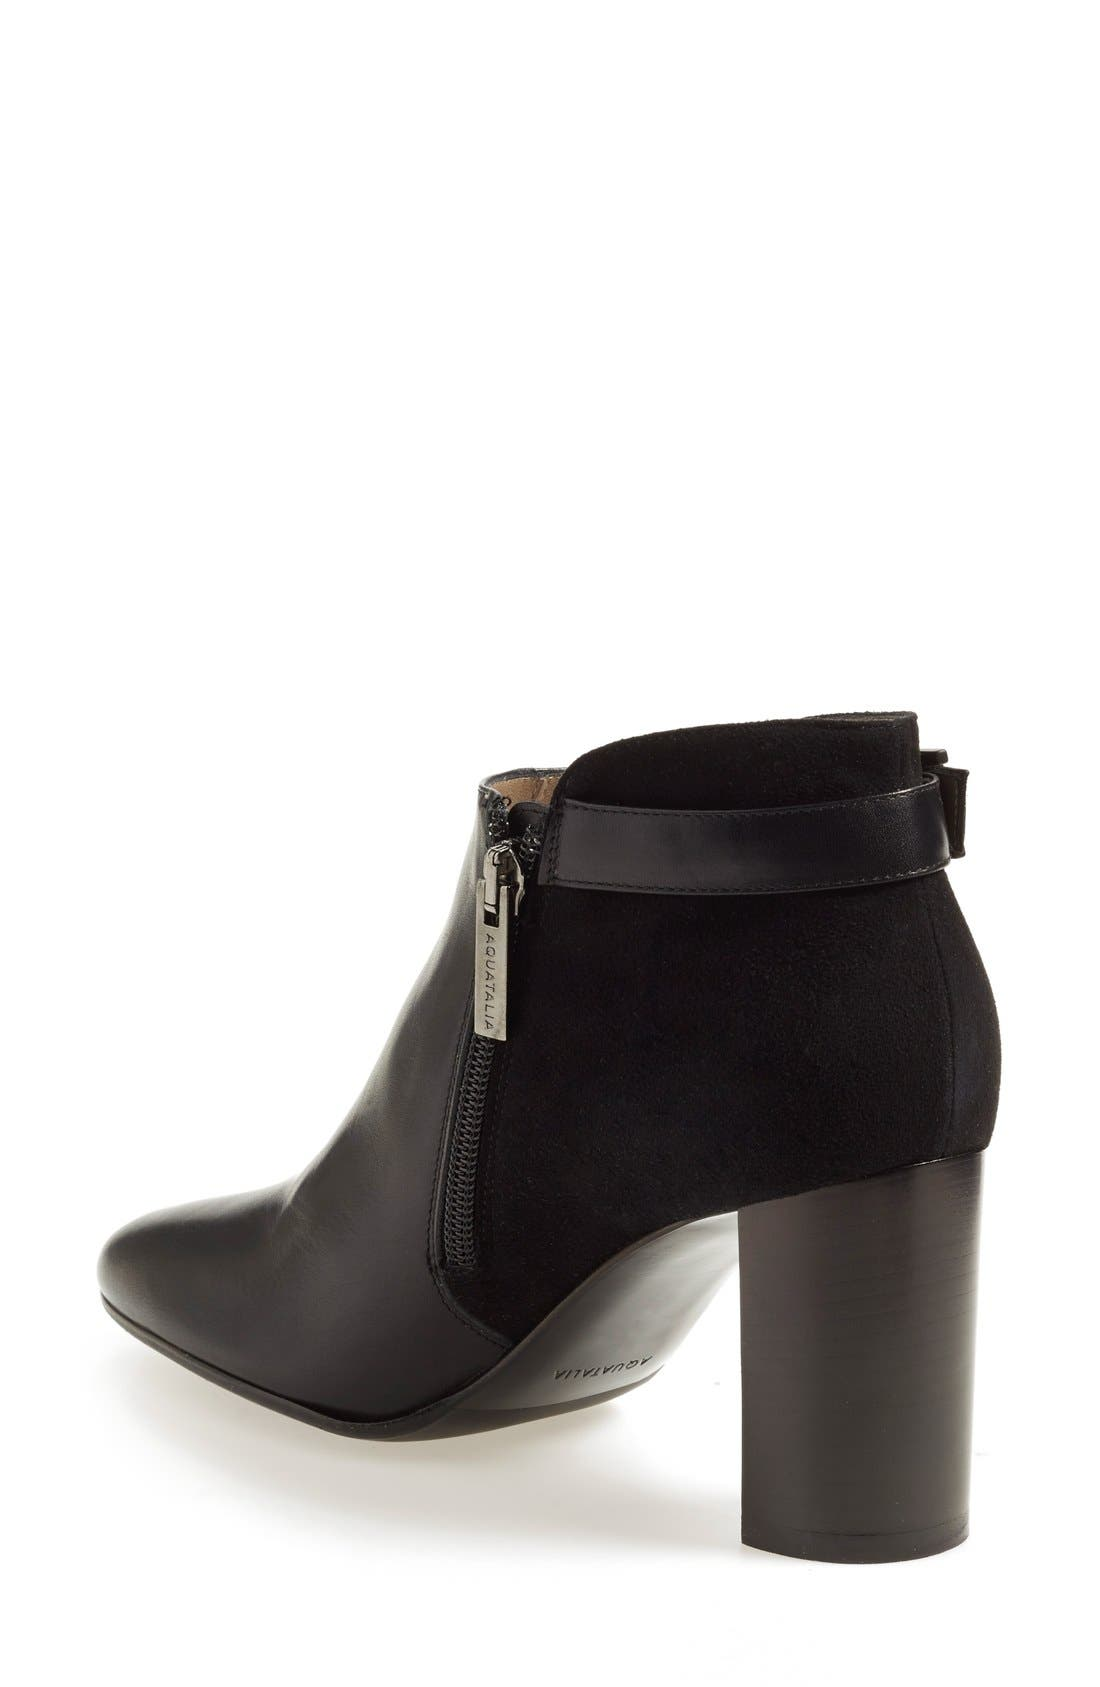 Alternate Image 2  - Aquatalia 'Verona' Weatherproof Bootie (Women) (Nordstrom Exclusive)